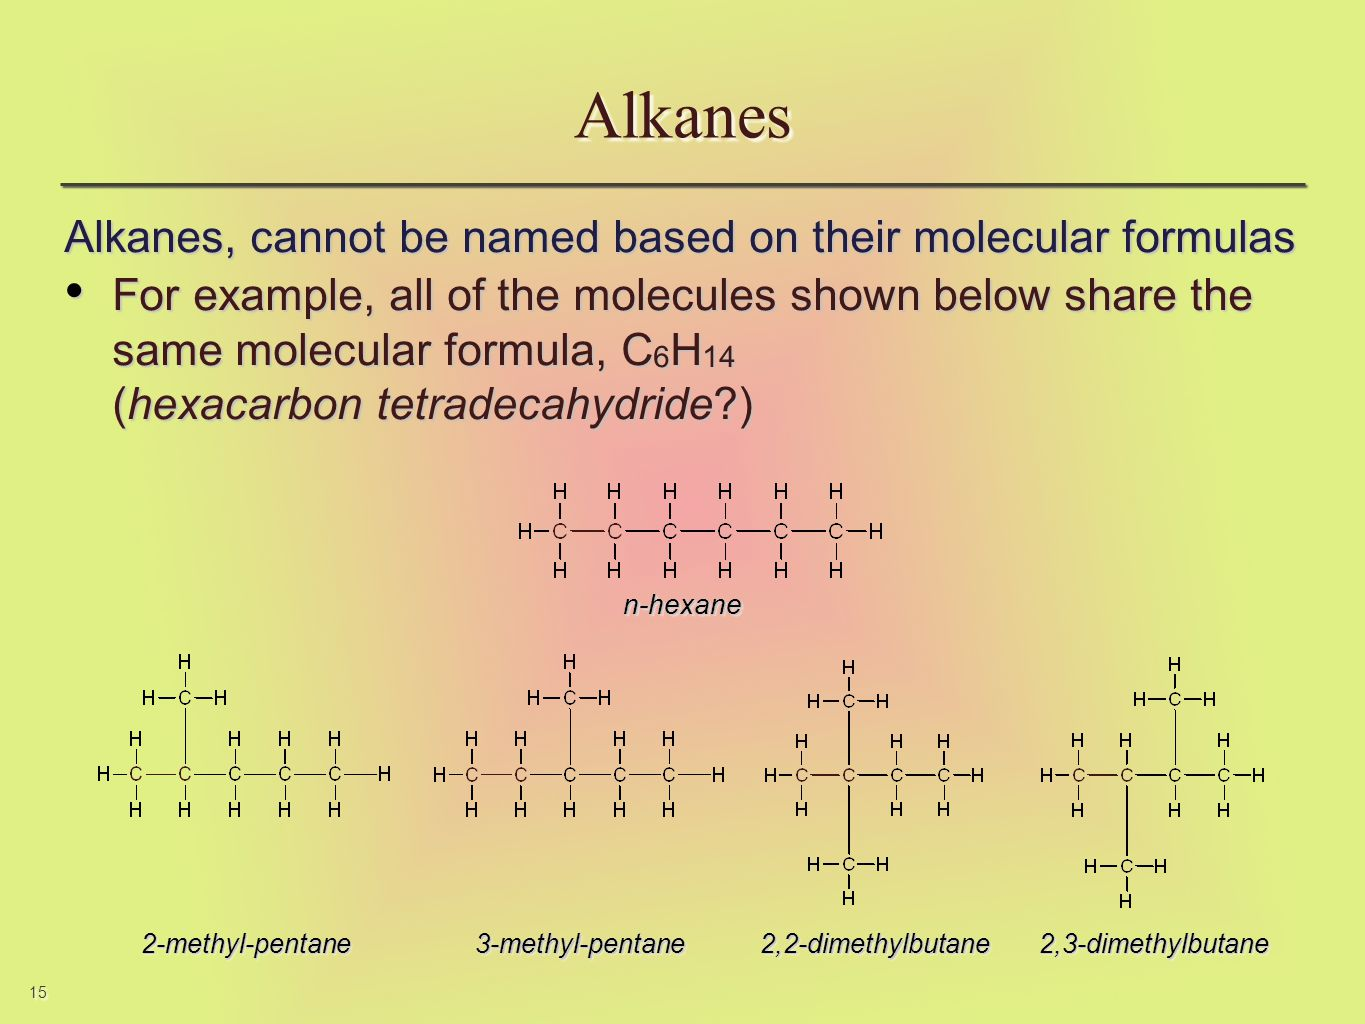 15 Alkanes, cannot be named based on their molecular formulas For example, all of the molecules shown below share the same molecular formula, C 6 H 14